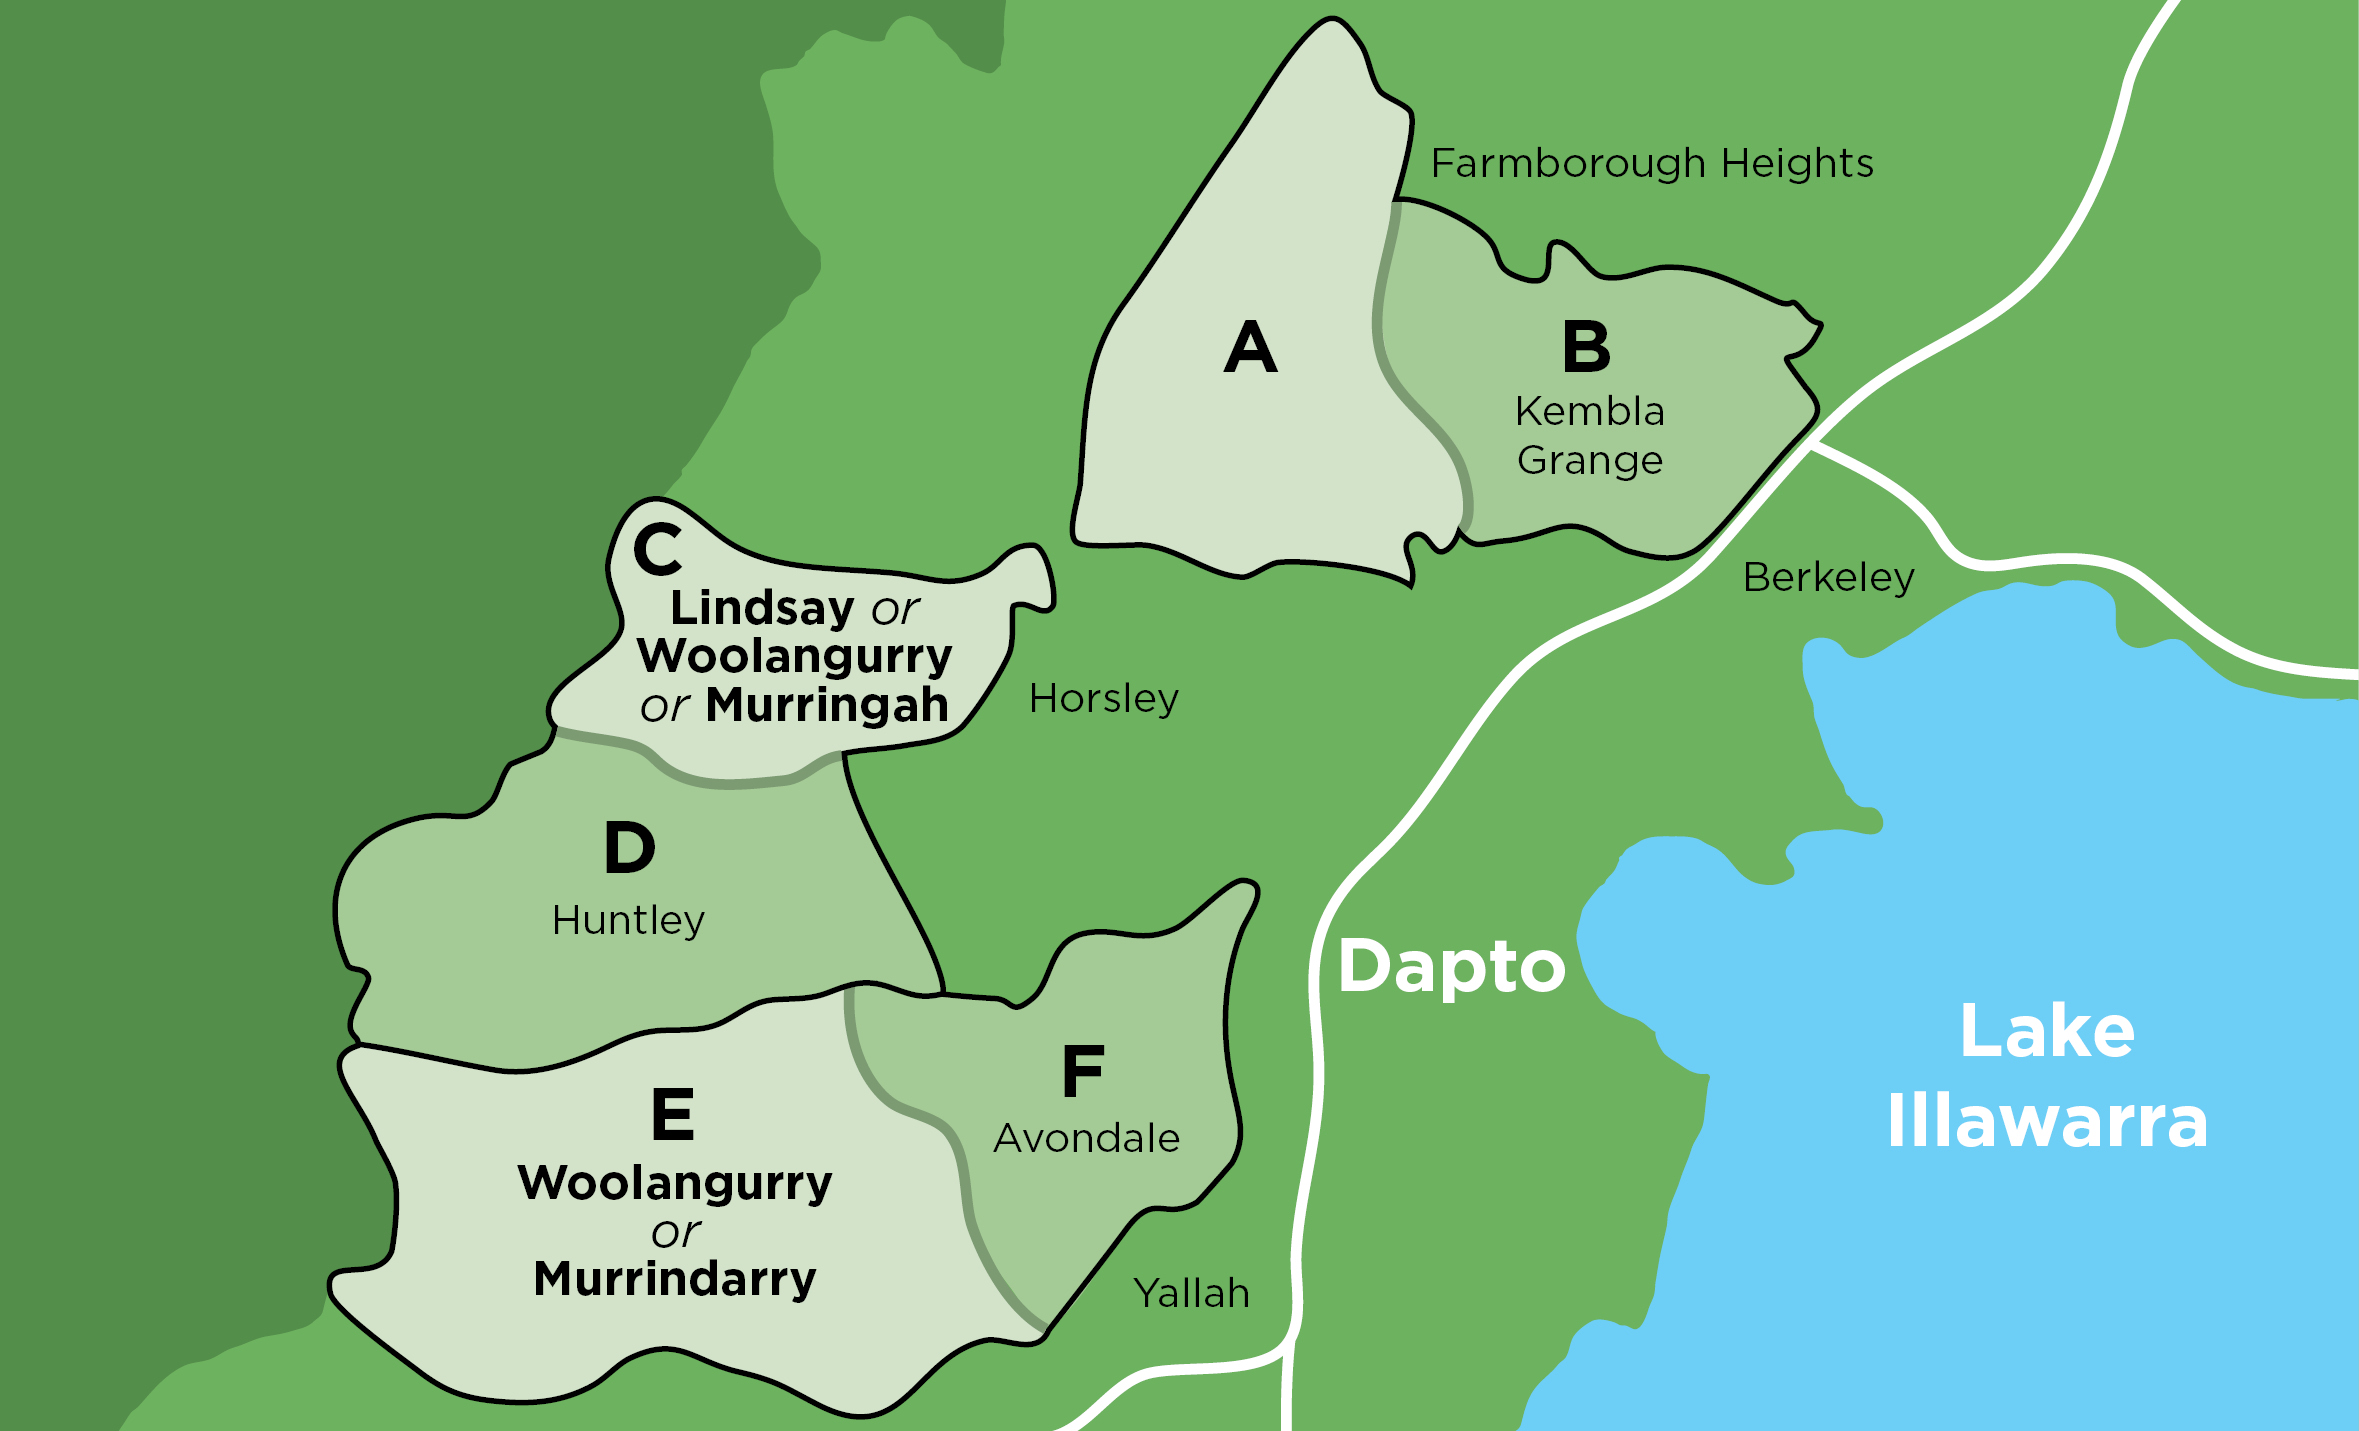 Map of West Dapto with suburbs of Kembla Grange, Avondale and Huntley divided in half. Fill out the feedback forms for Avondale/Huntley and/or Kembla Grange to let us know your thoughts.